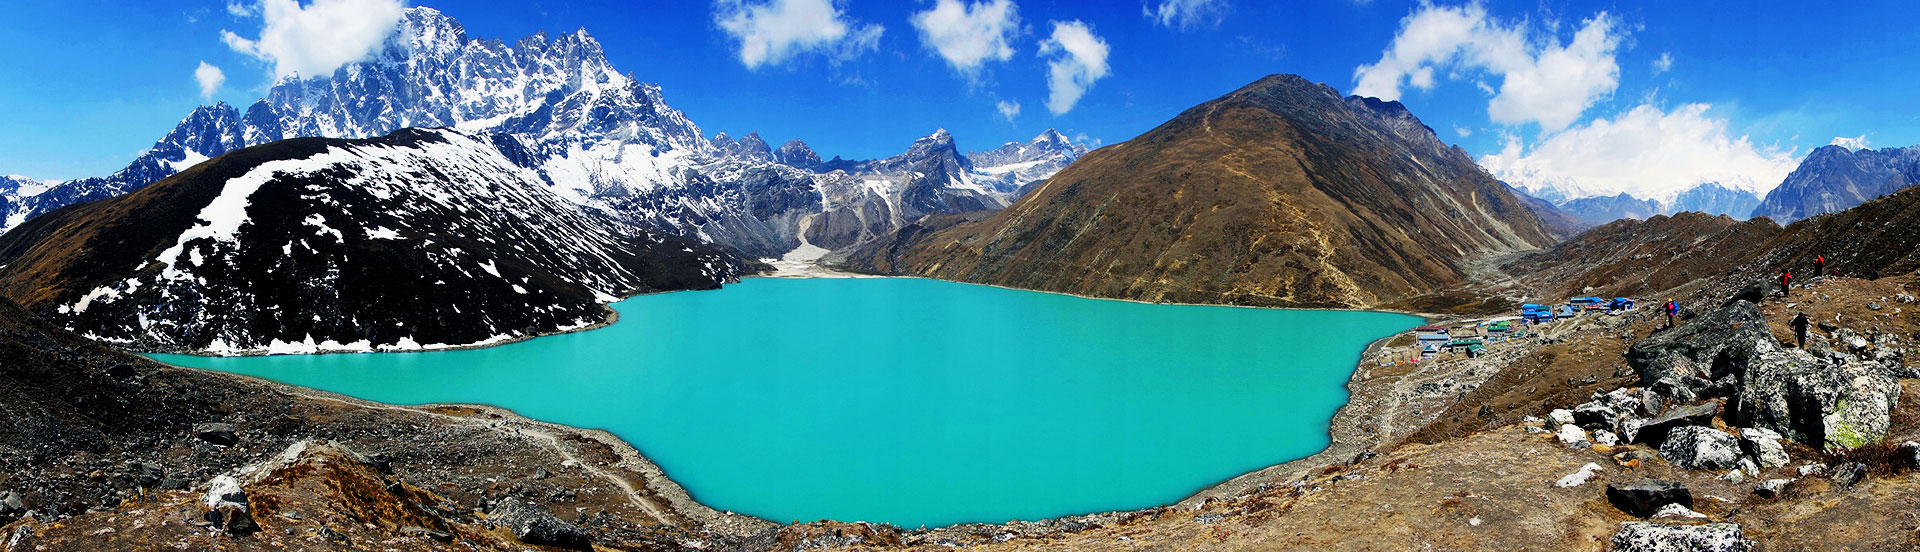 Gokyo, Kala Pattar & Everest Base Camp Trek